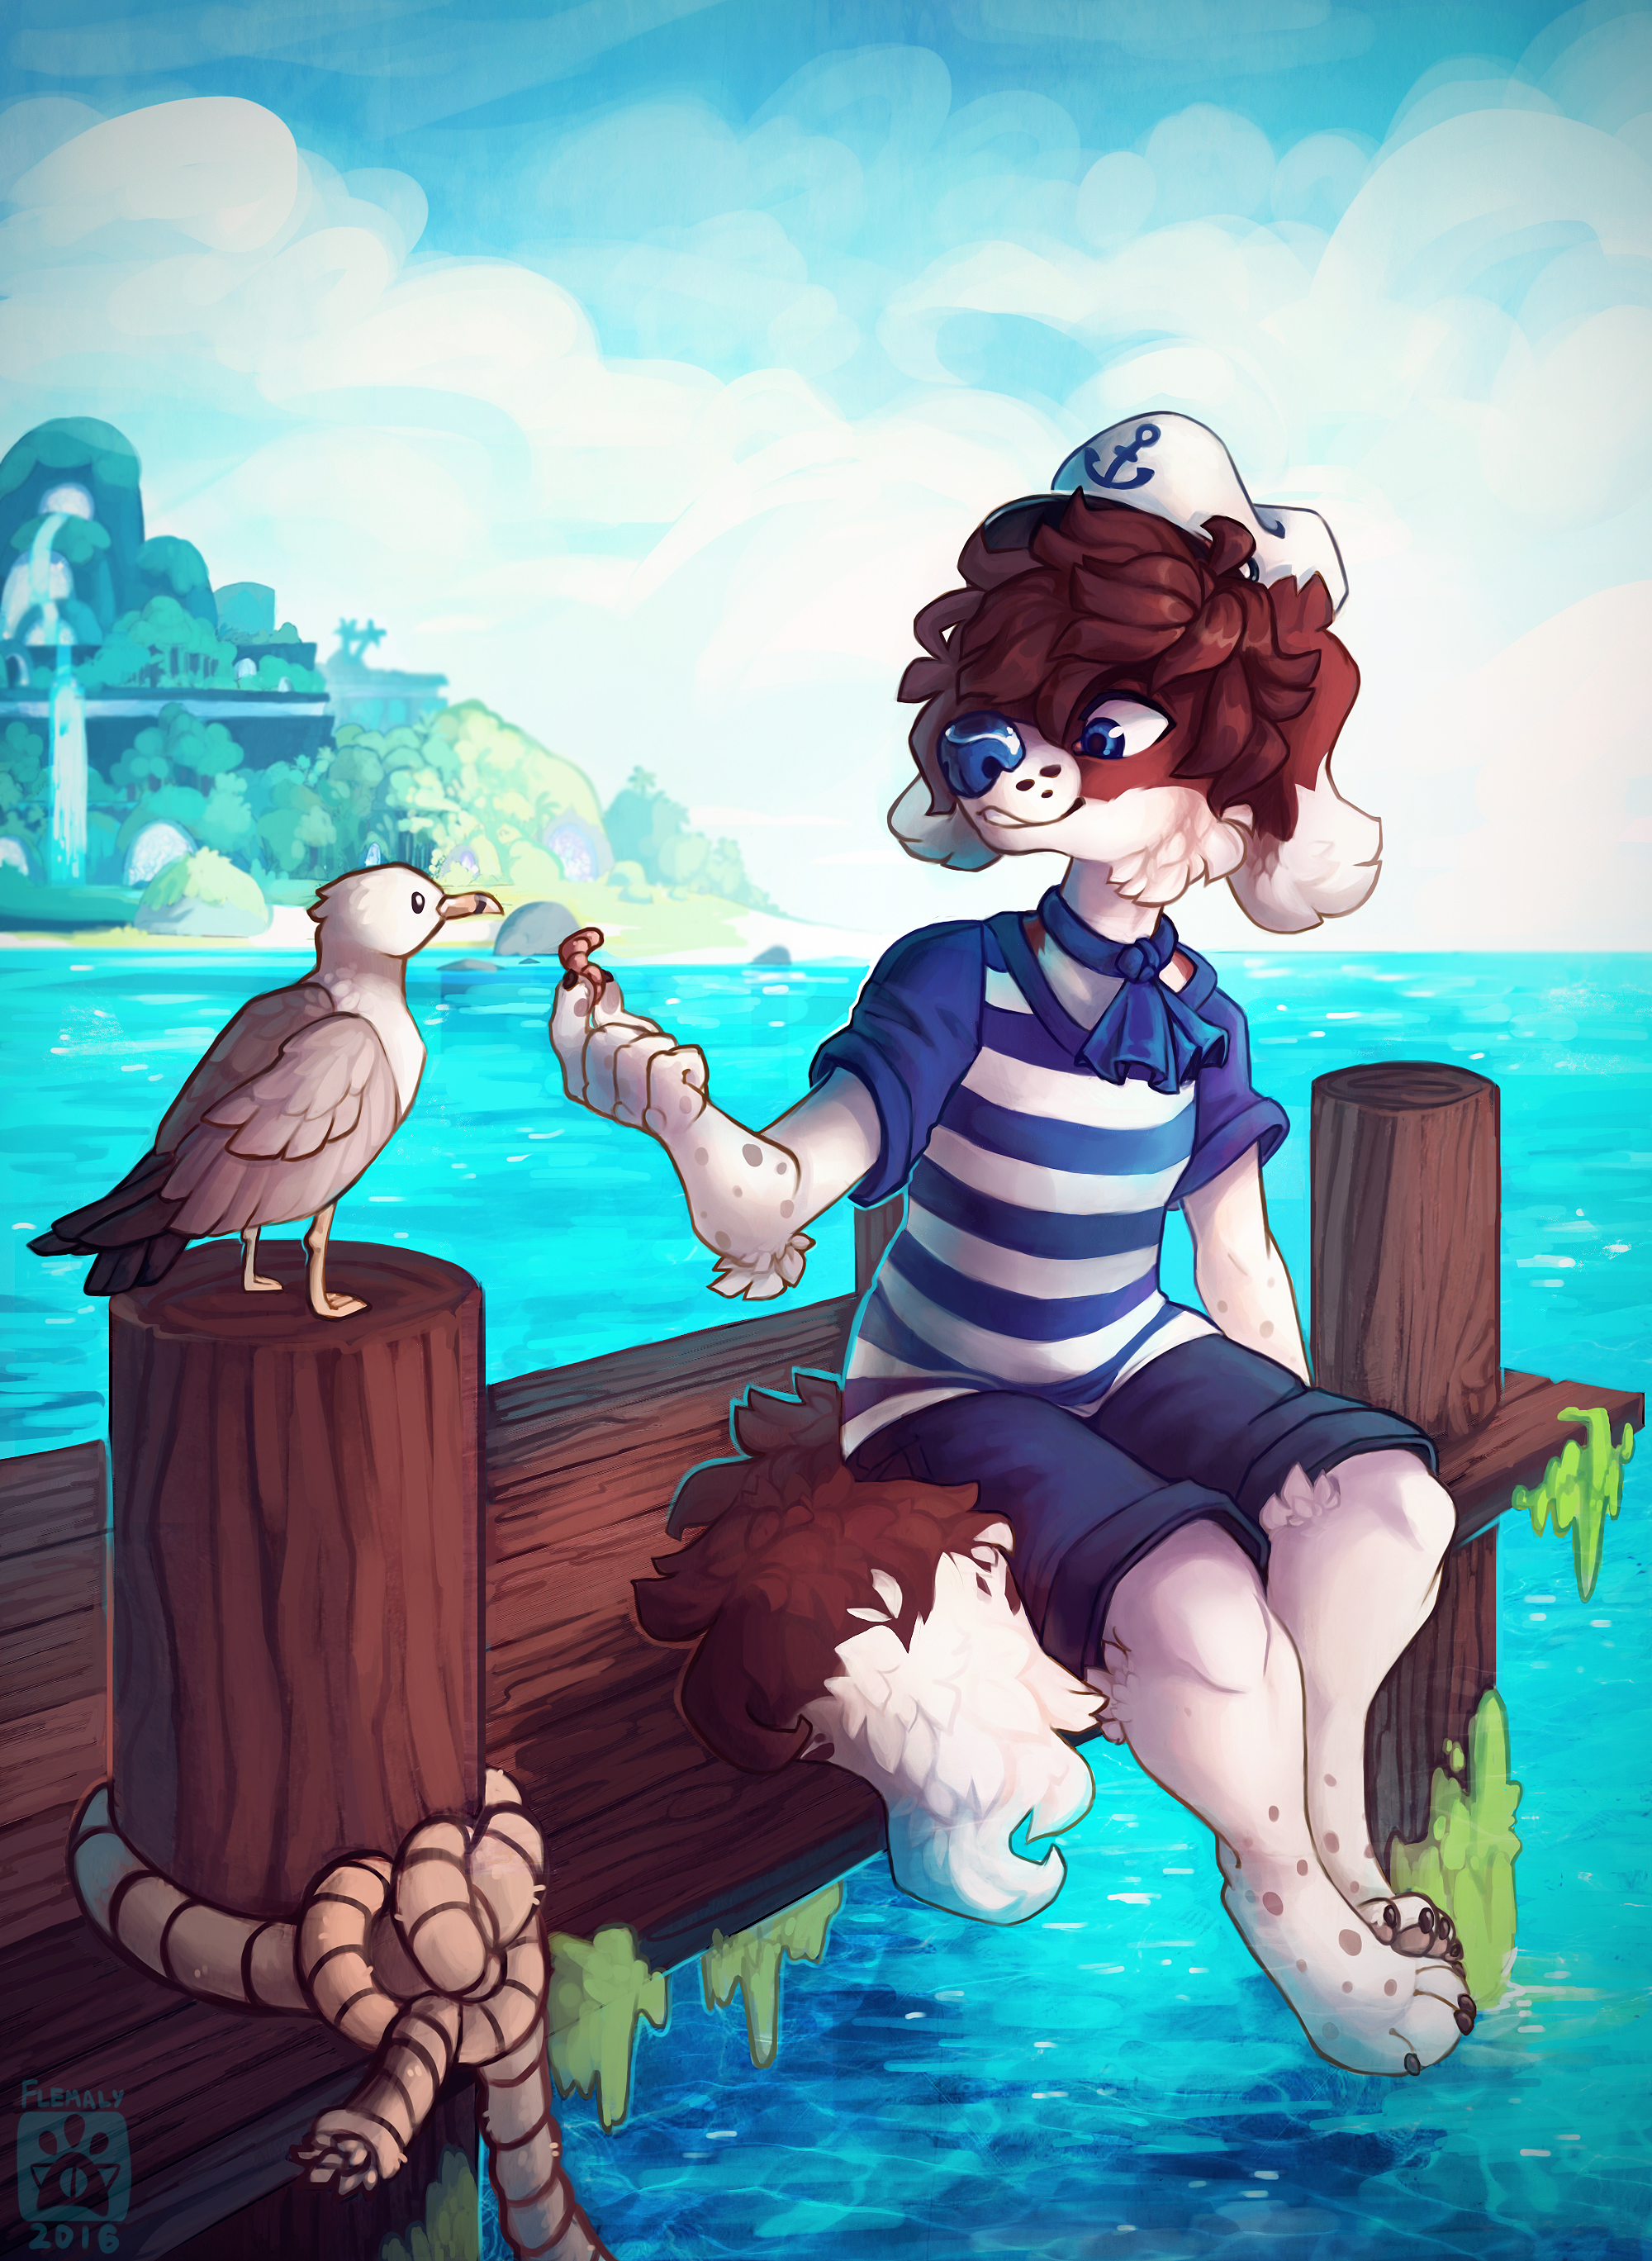 Do not feel the seagulls by Flemaly